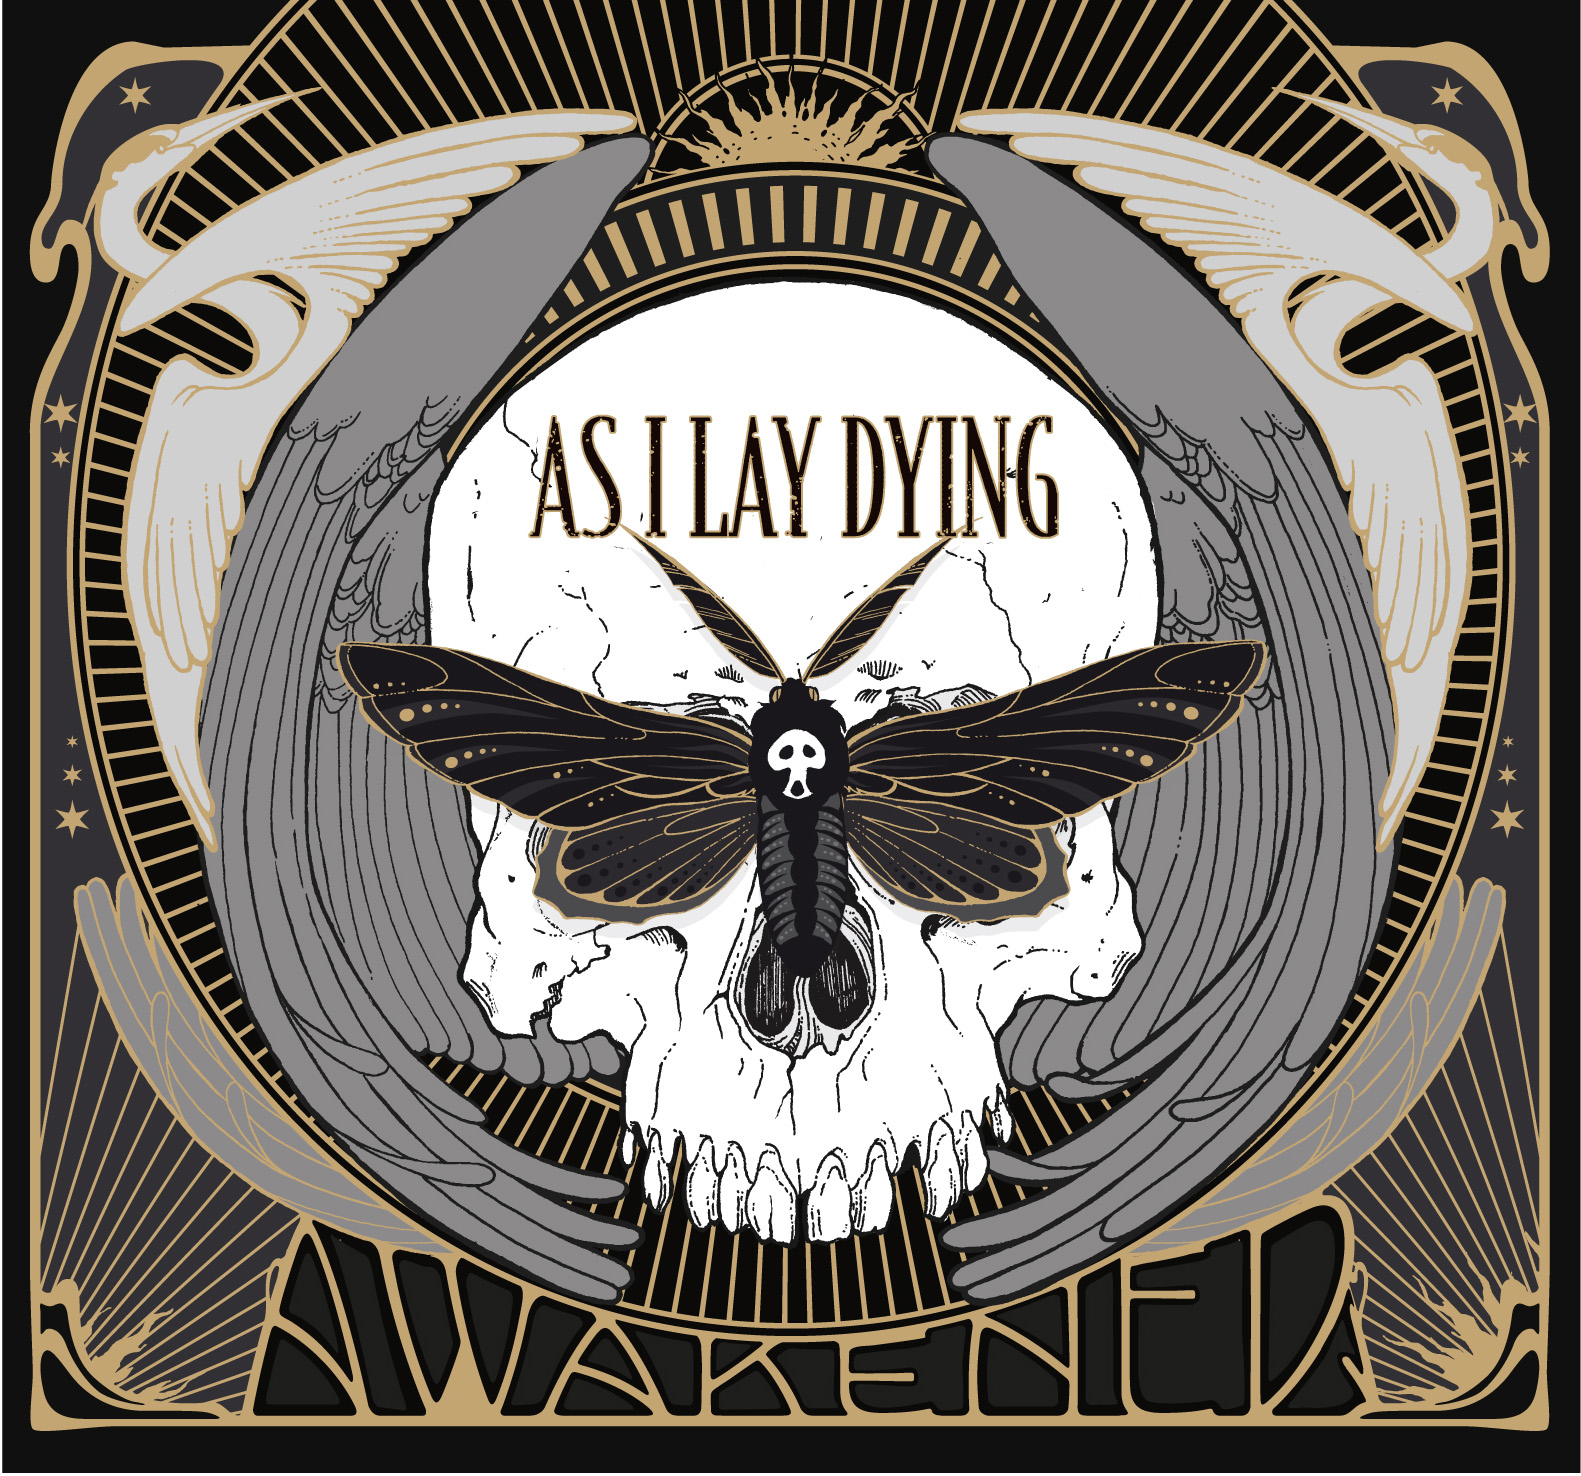 as i lay dying a As i lay dying is an american metalcore band from san diego, california founded in 2000 by vocalist tim lambesis, the establishment of the band's first full.